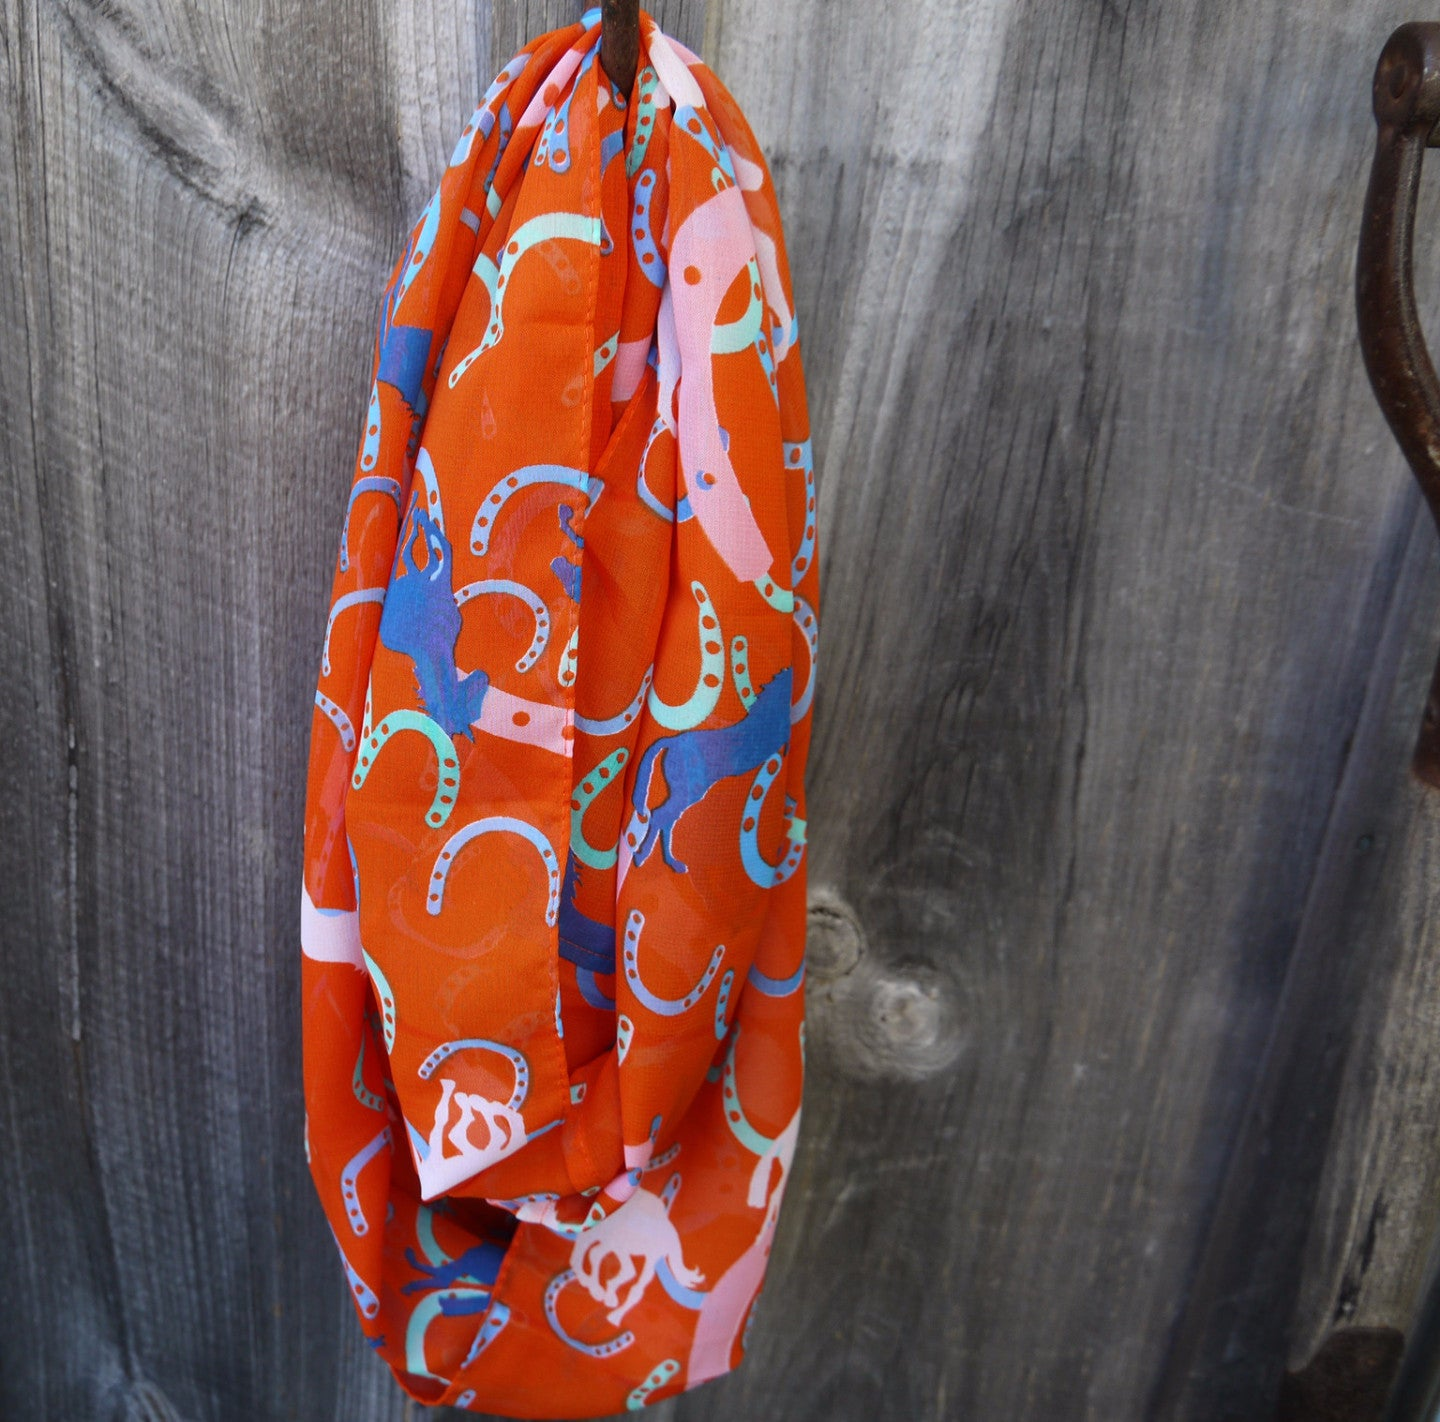 Orange - Chiffon Infinity Scarf - Pony Express Girls